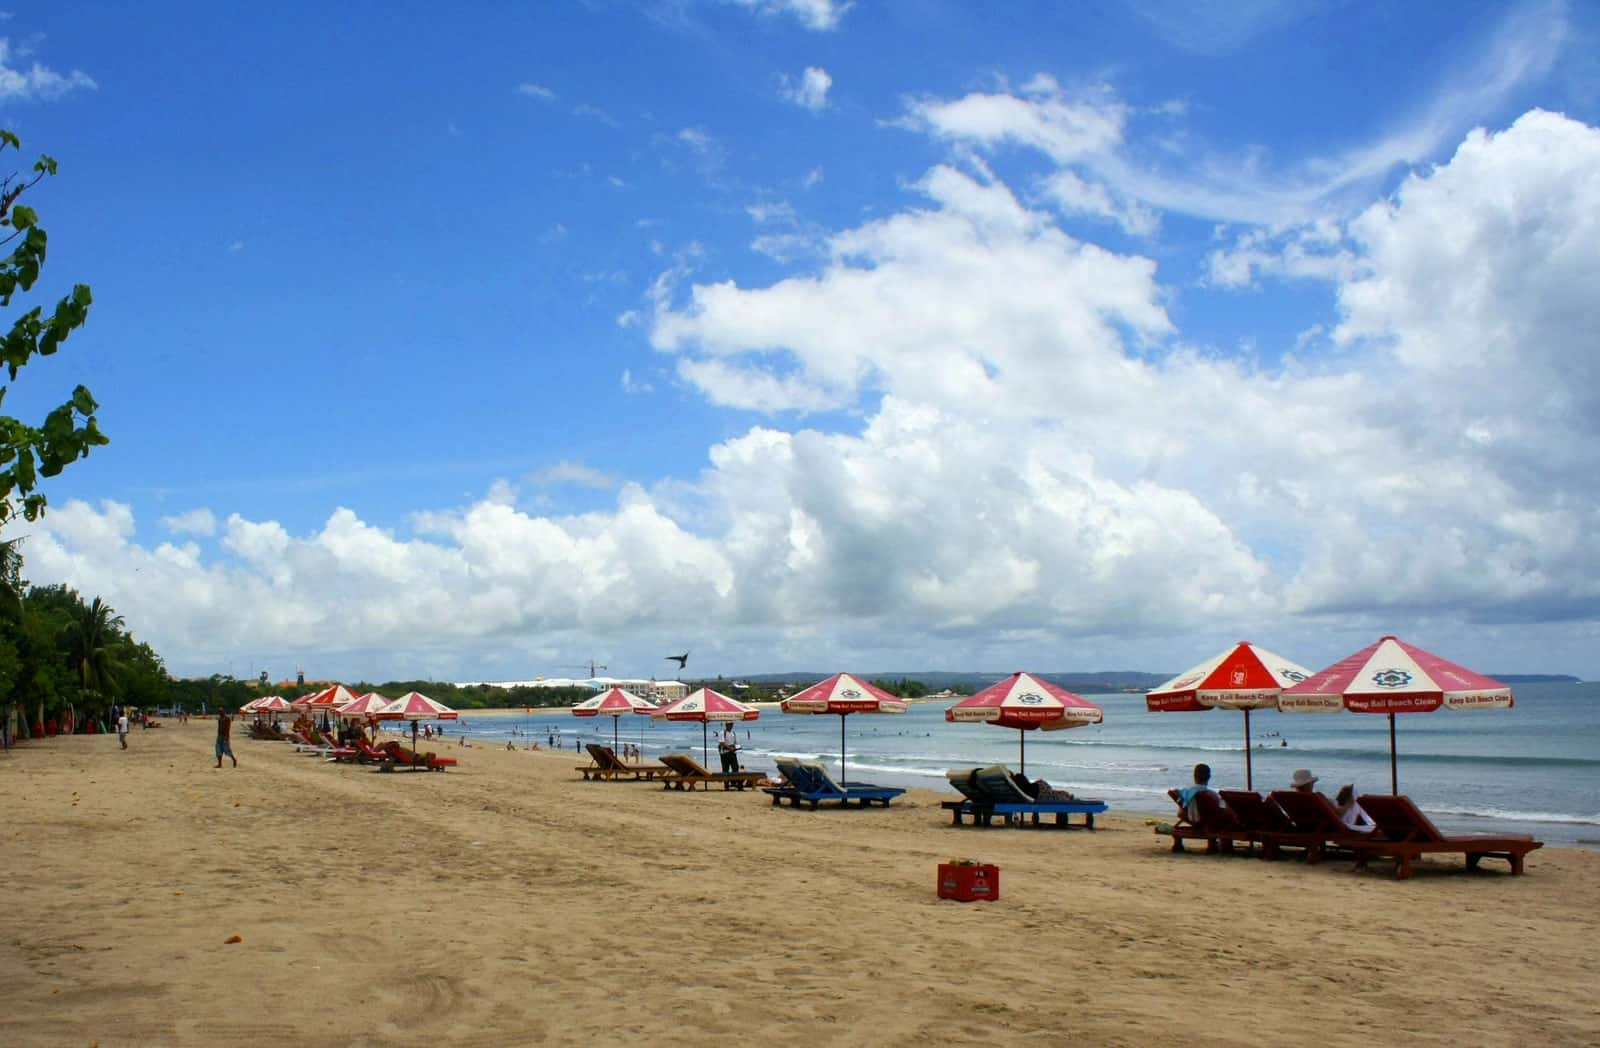 Kuta Beach in Kuta, Bali, Indonesia